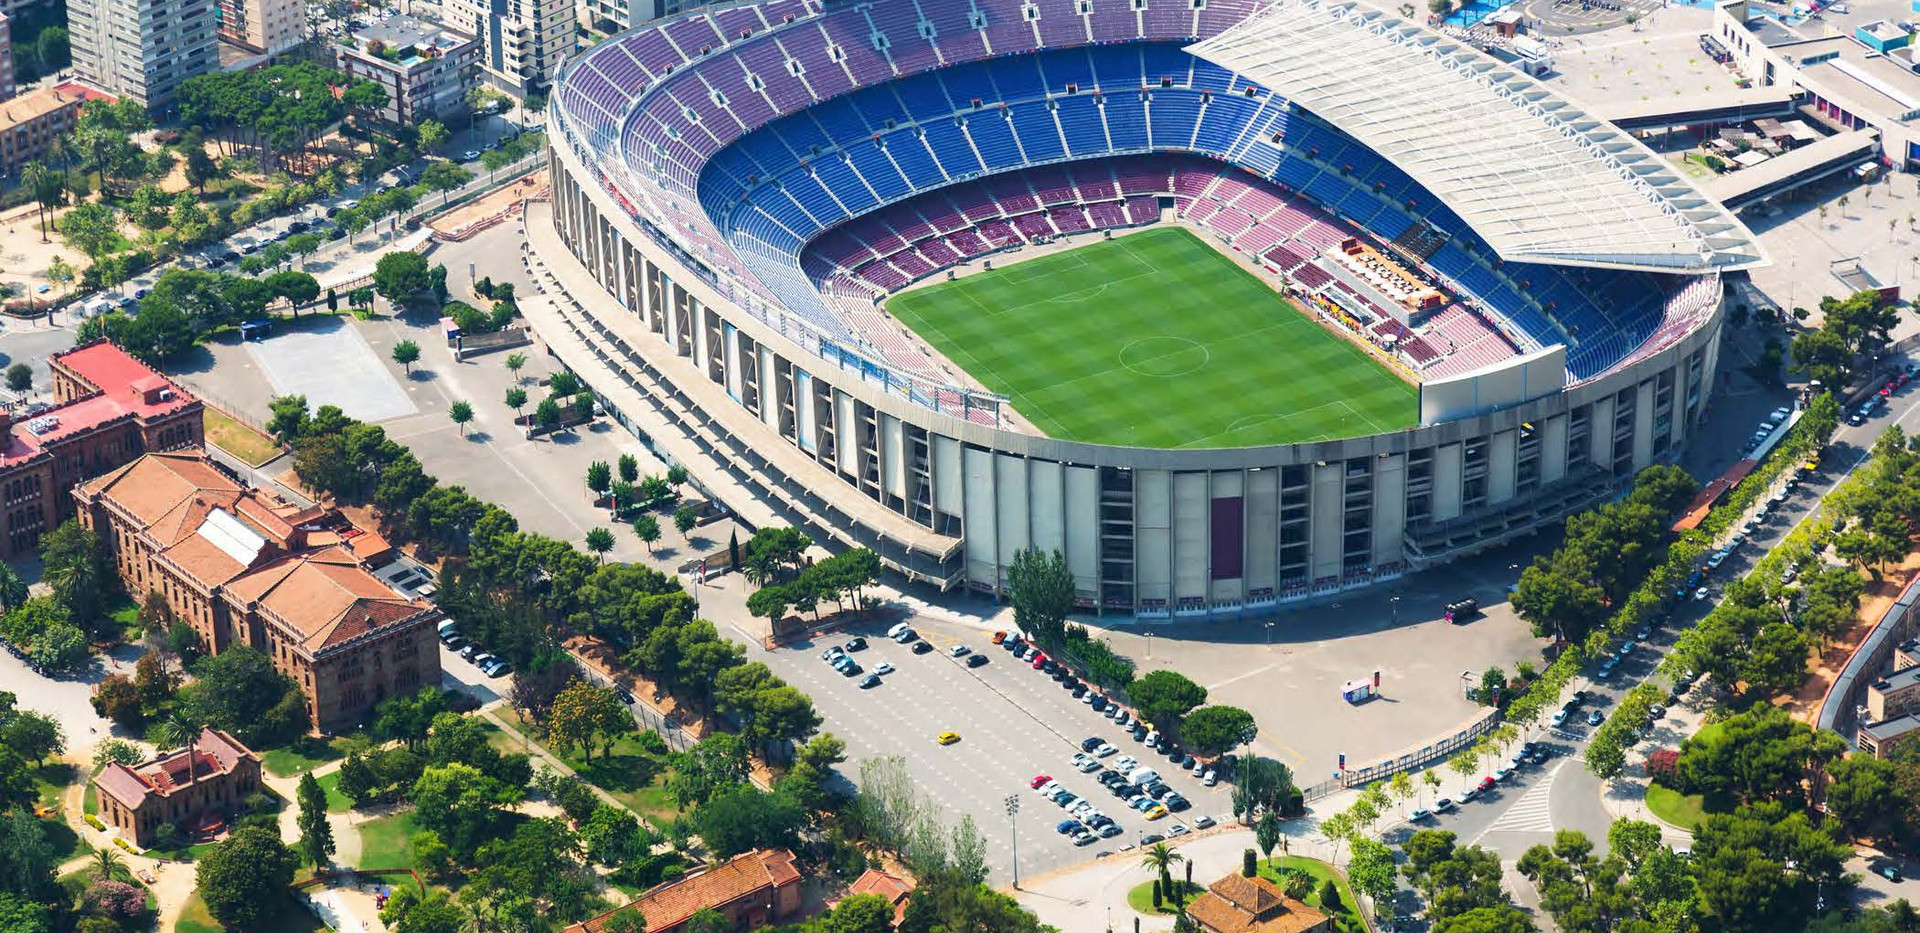 Canva - Stadium of Barcelona from Helico